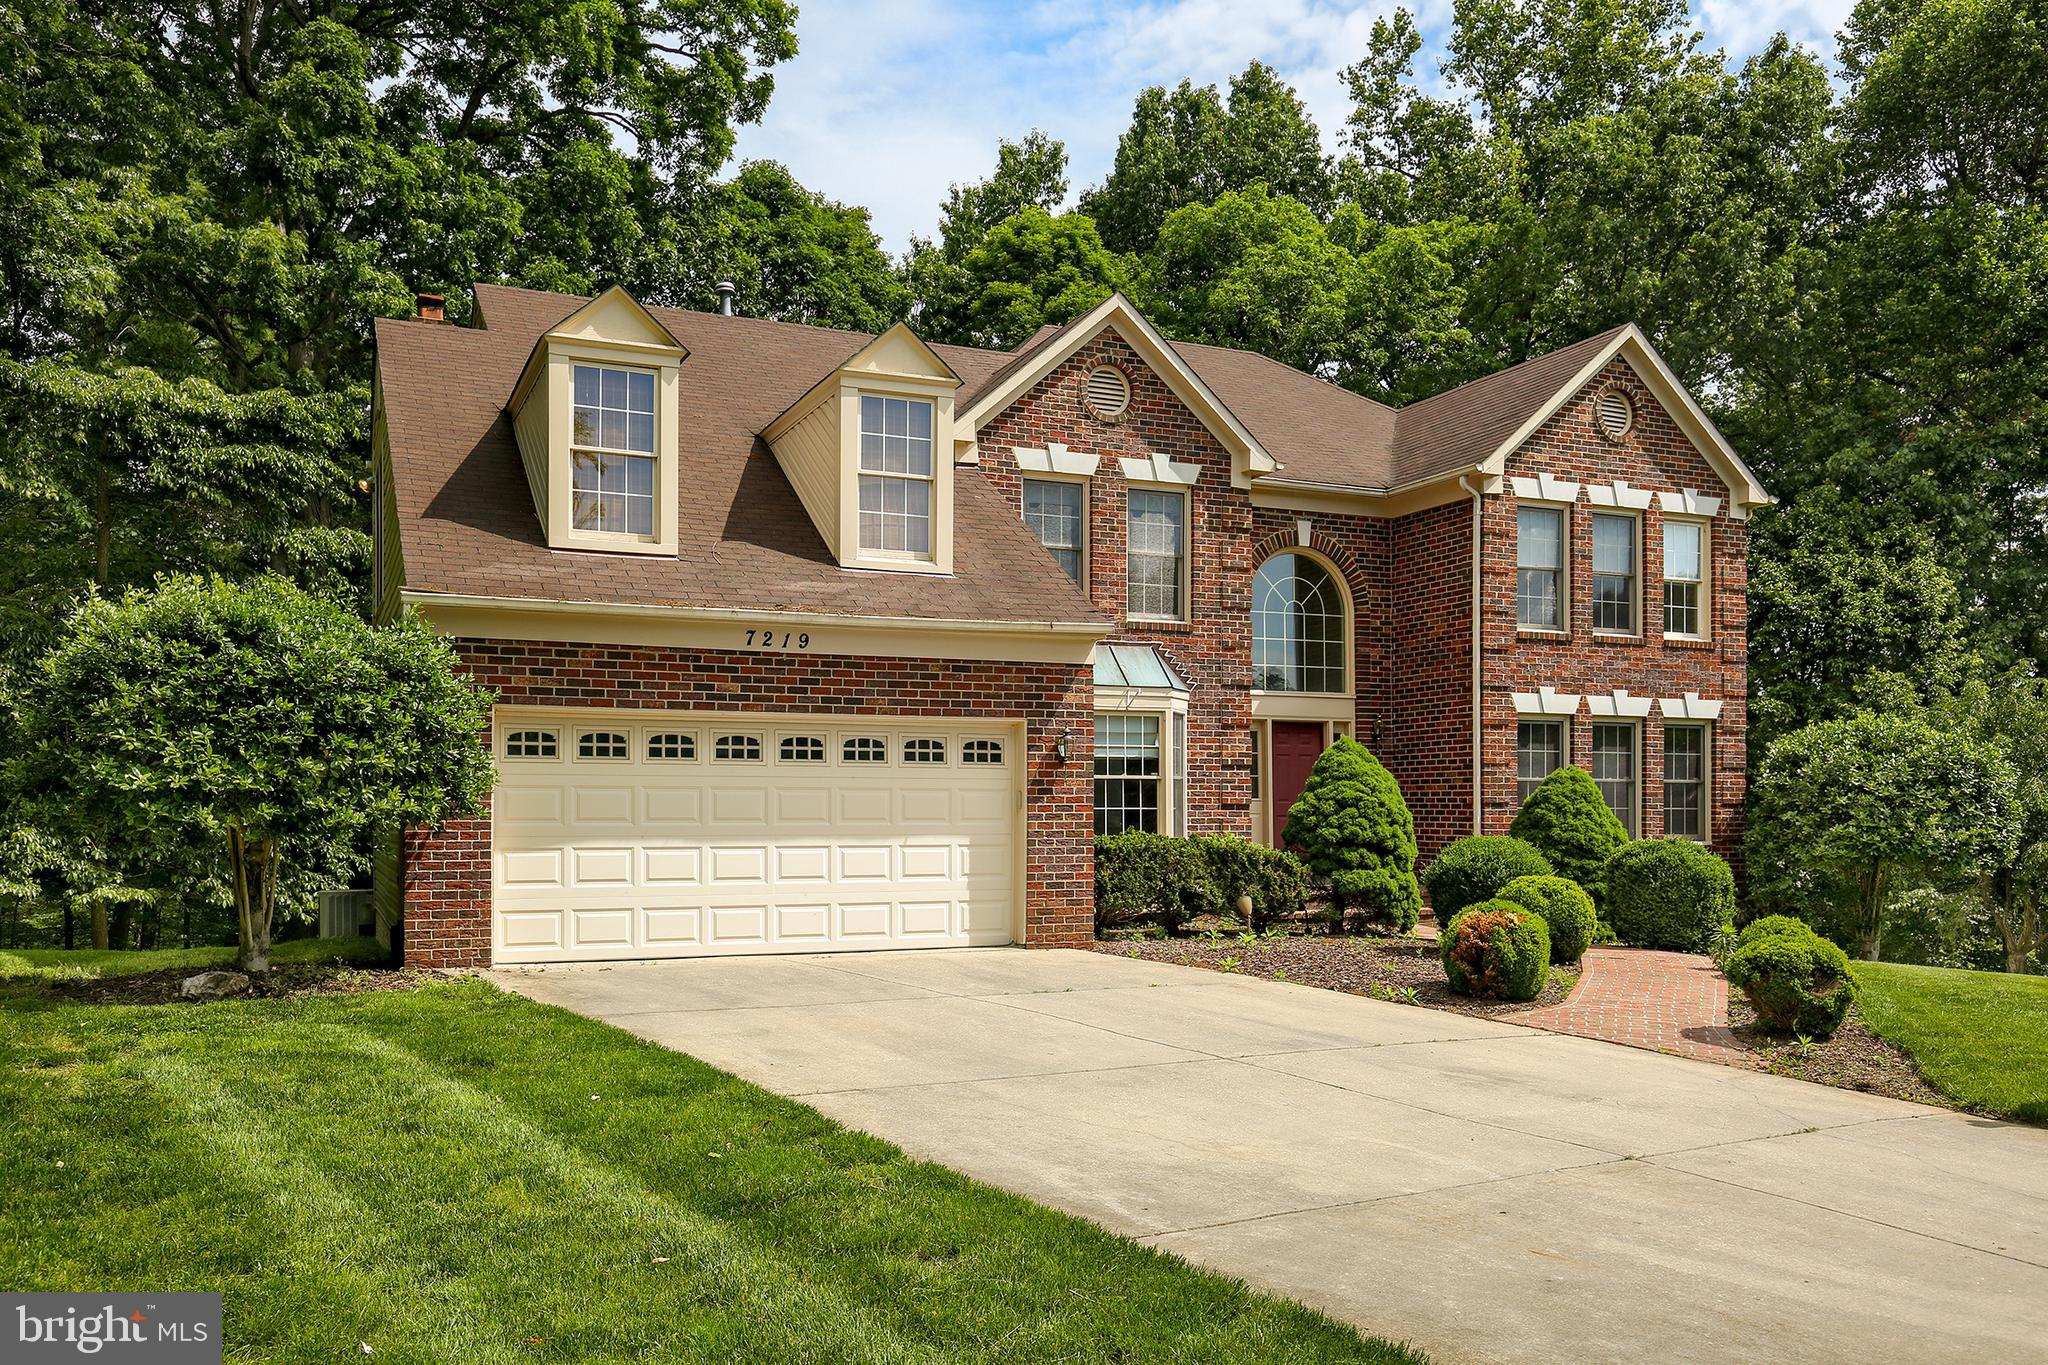 7219 OSPREY DRIVE, ROCKVILLE, MD 20855